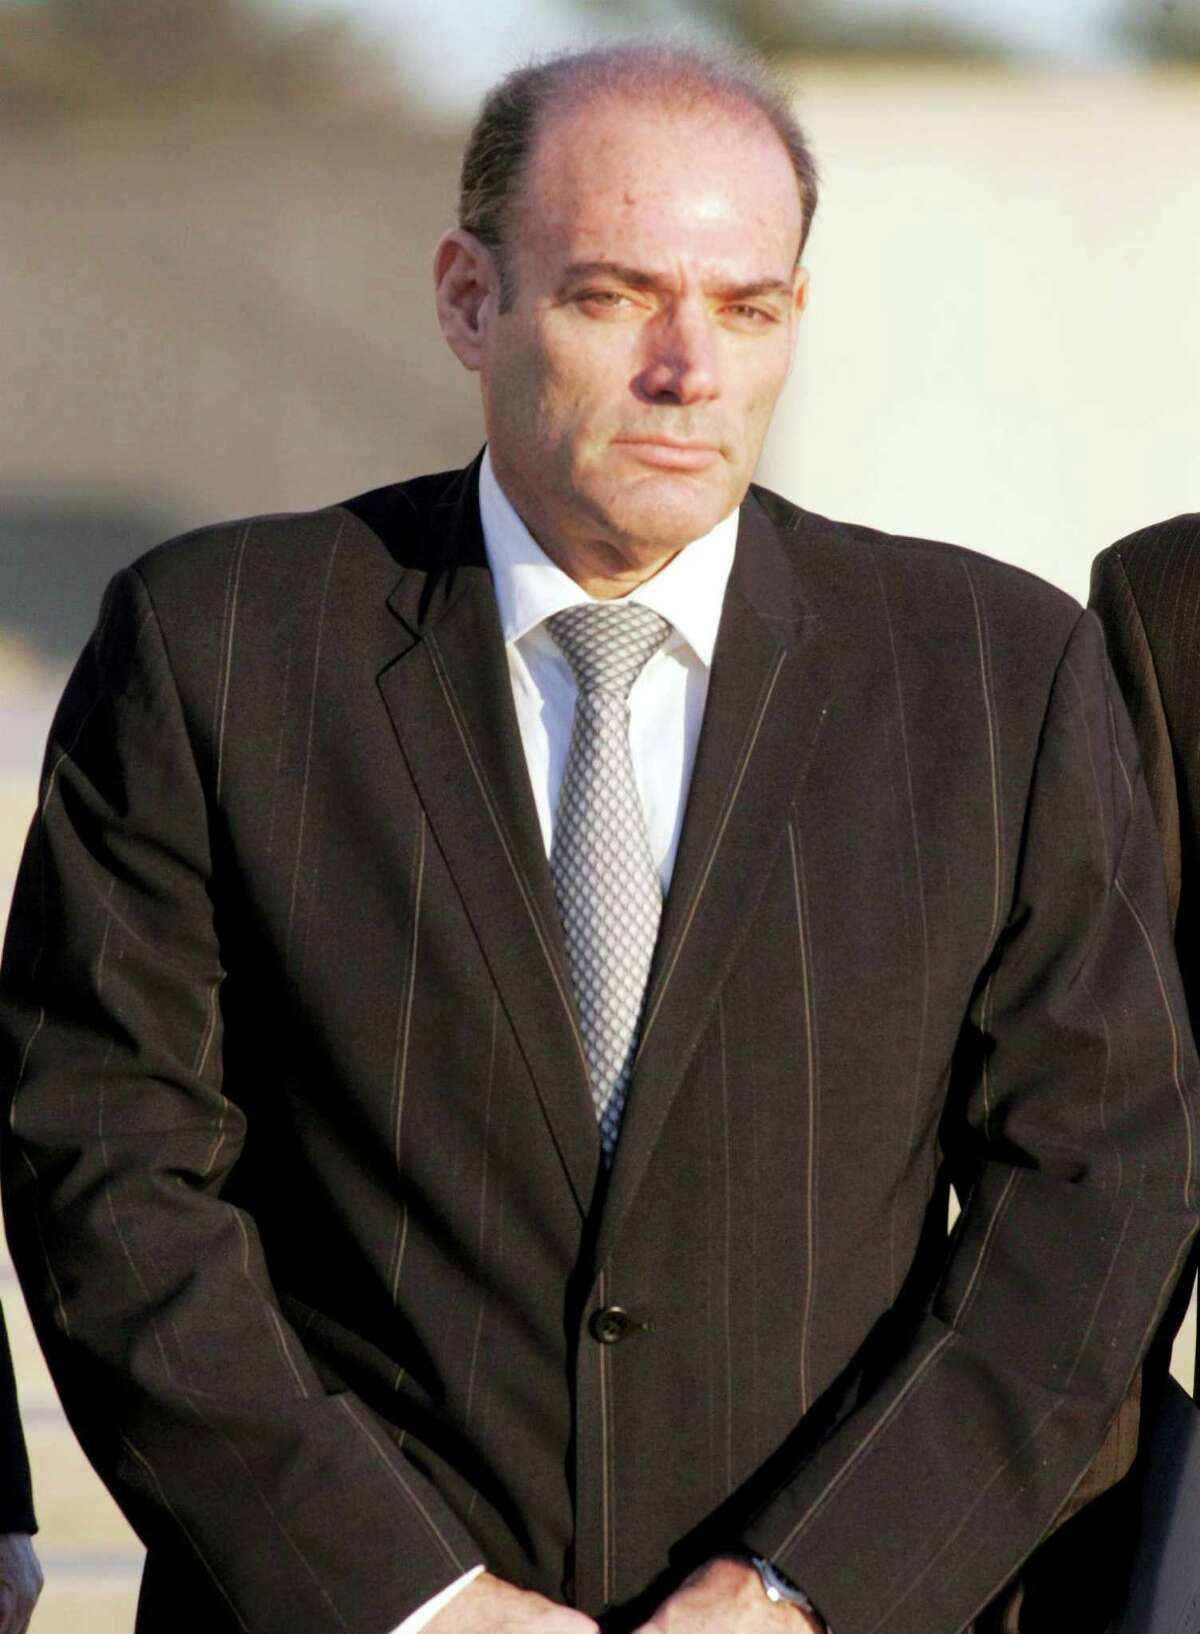 David Brooks leaves the federal courthouse in Central Islip, N.Y. in 2008. Brooks, the founder of America's leading supplier of body armor to the U.S. military, died Thursday in prison while serving a 17-year sentence for running a massive stock fraud scheme. He was 61. Newsday, Howard Schnapp — AP File Photo